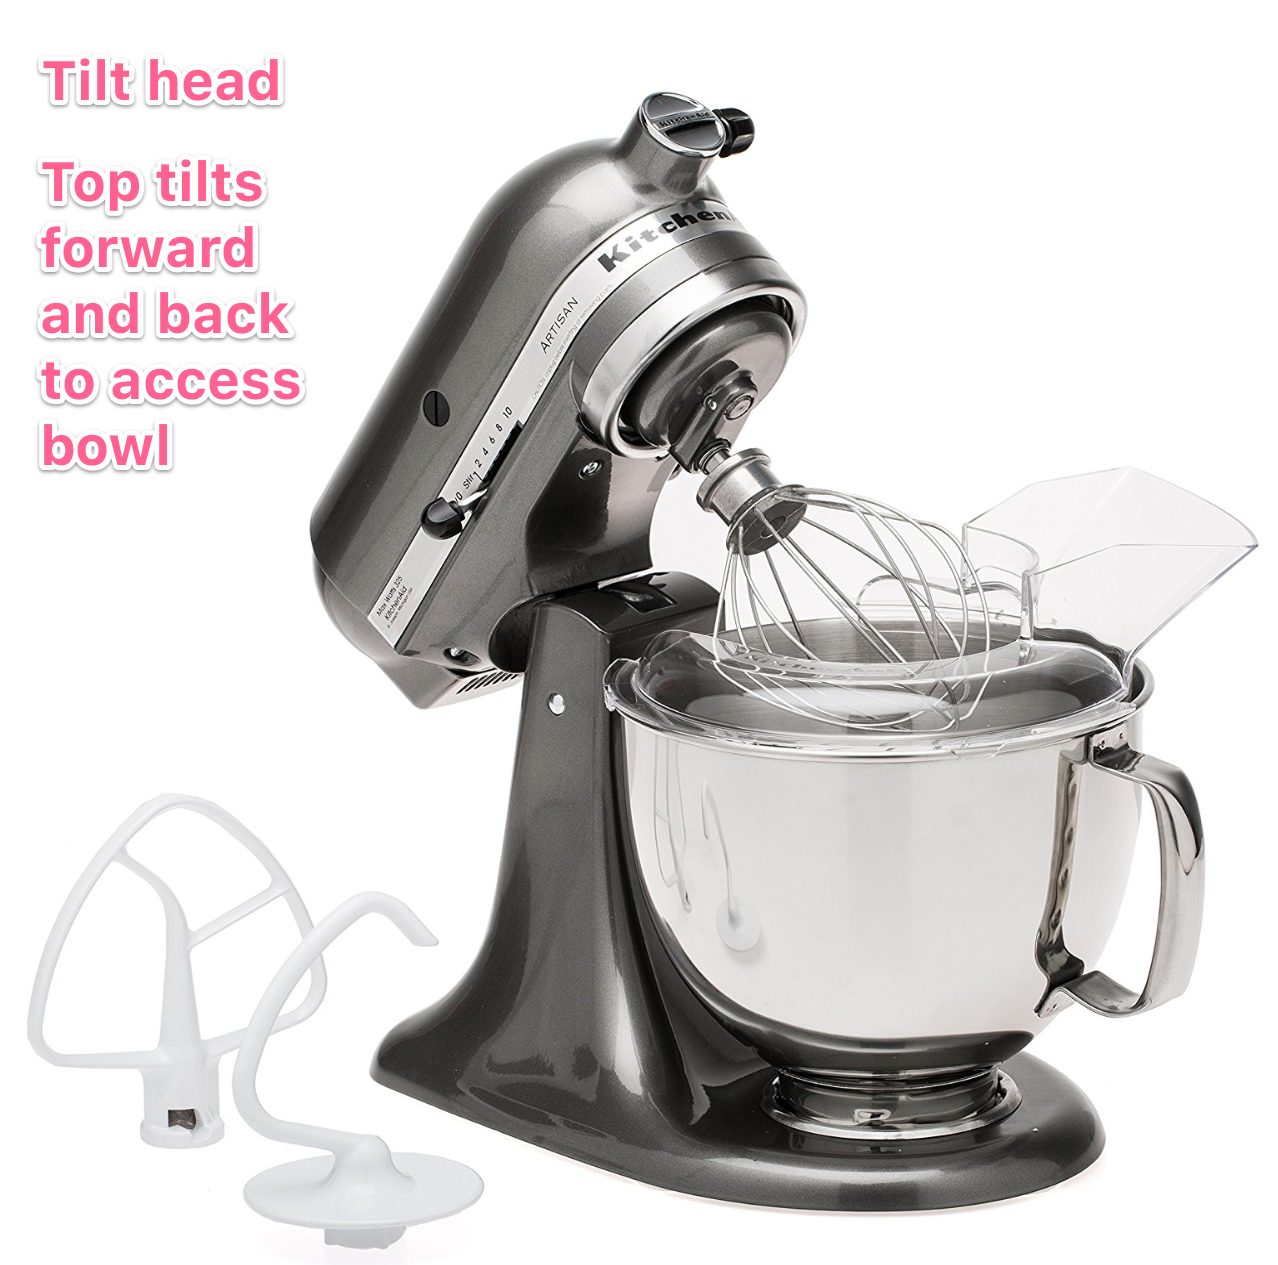 KitchenAid Mixer attachments: All 83 attachments, add-ons